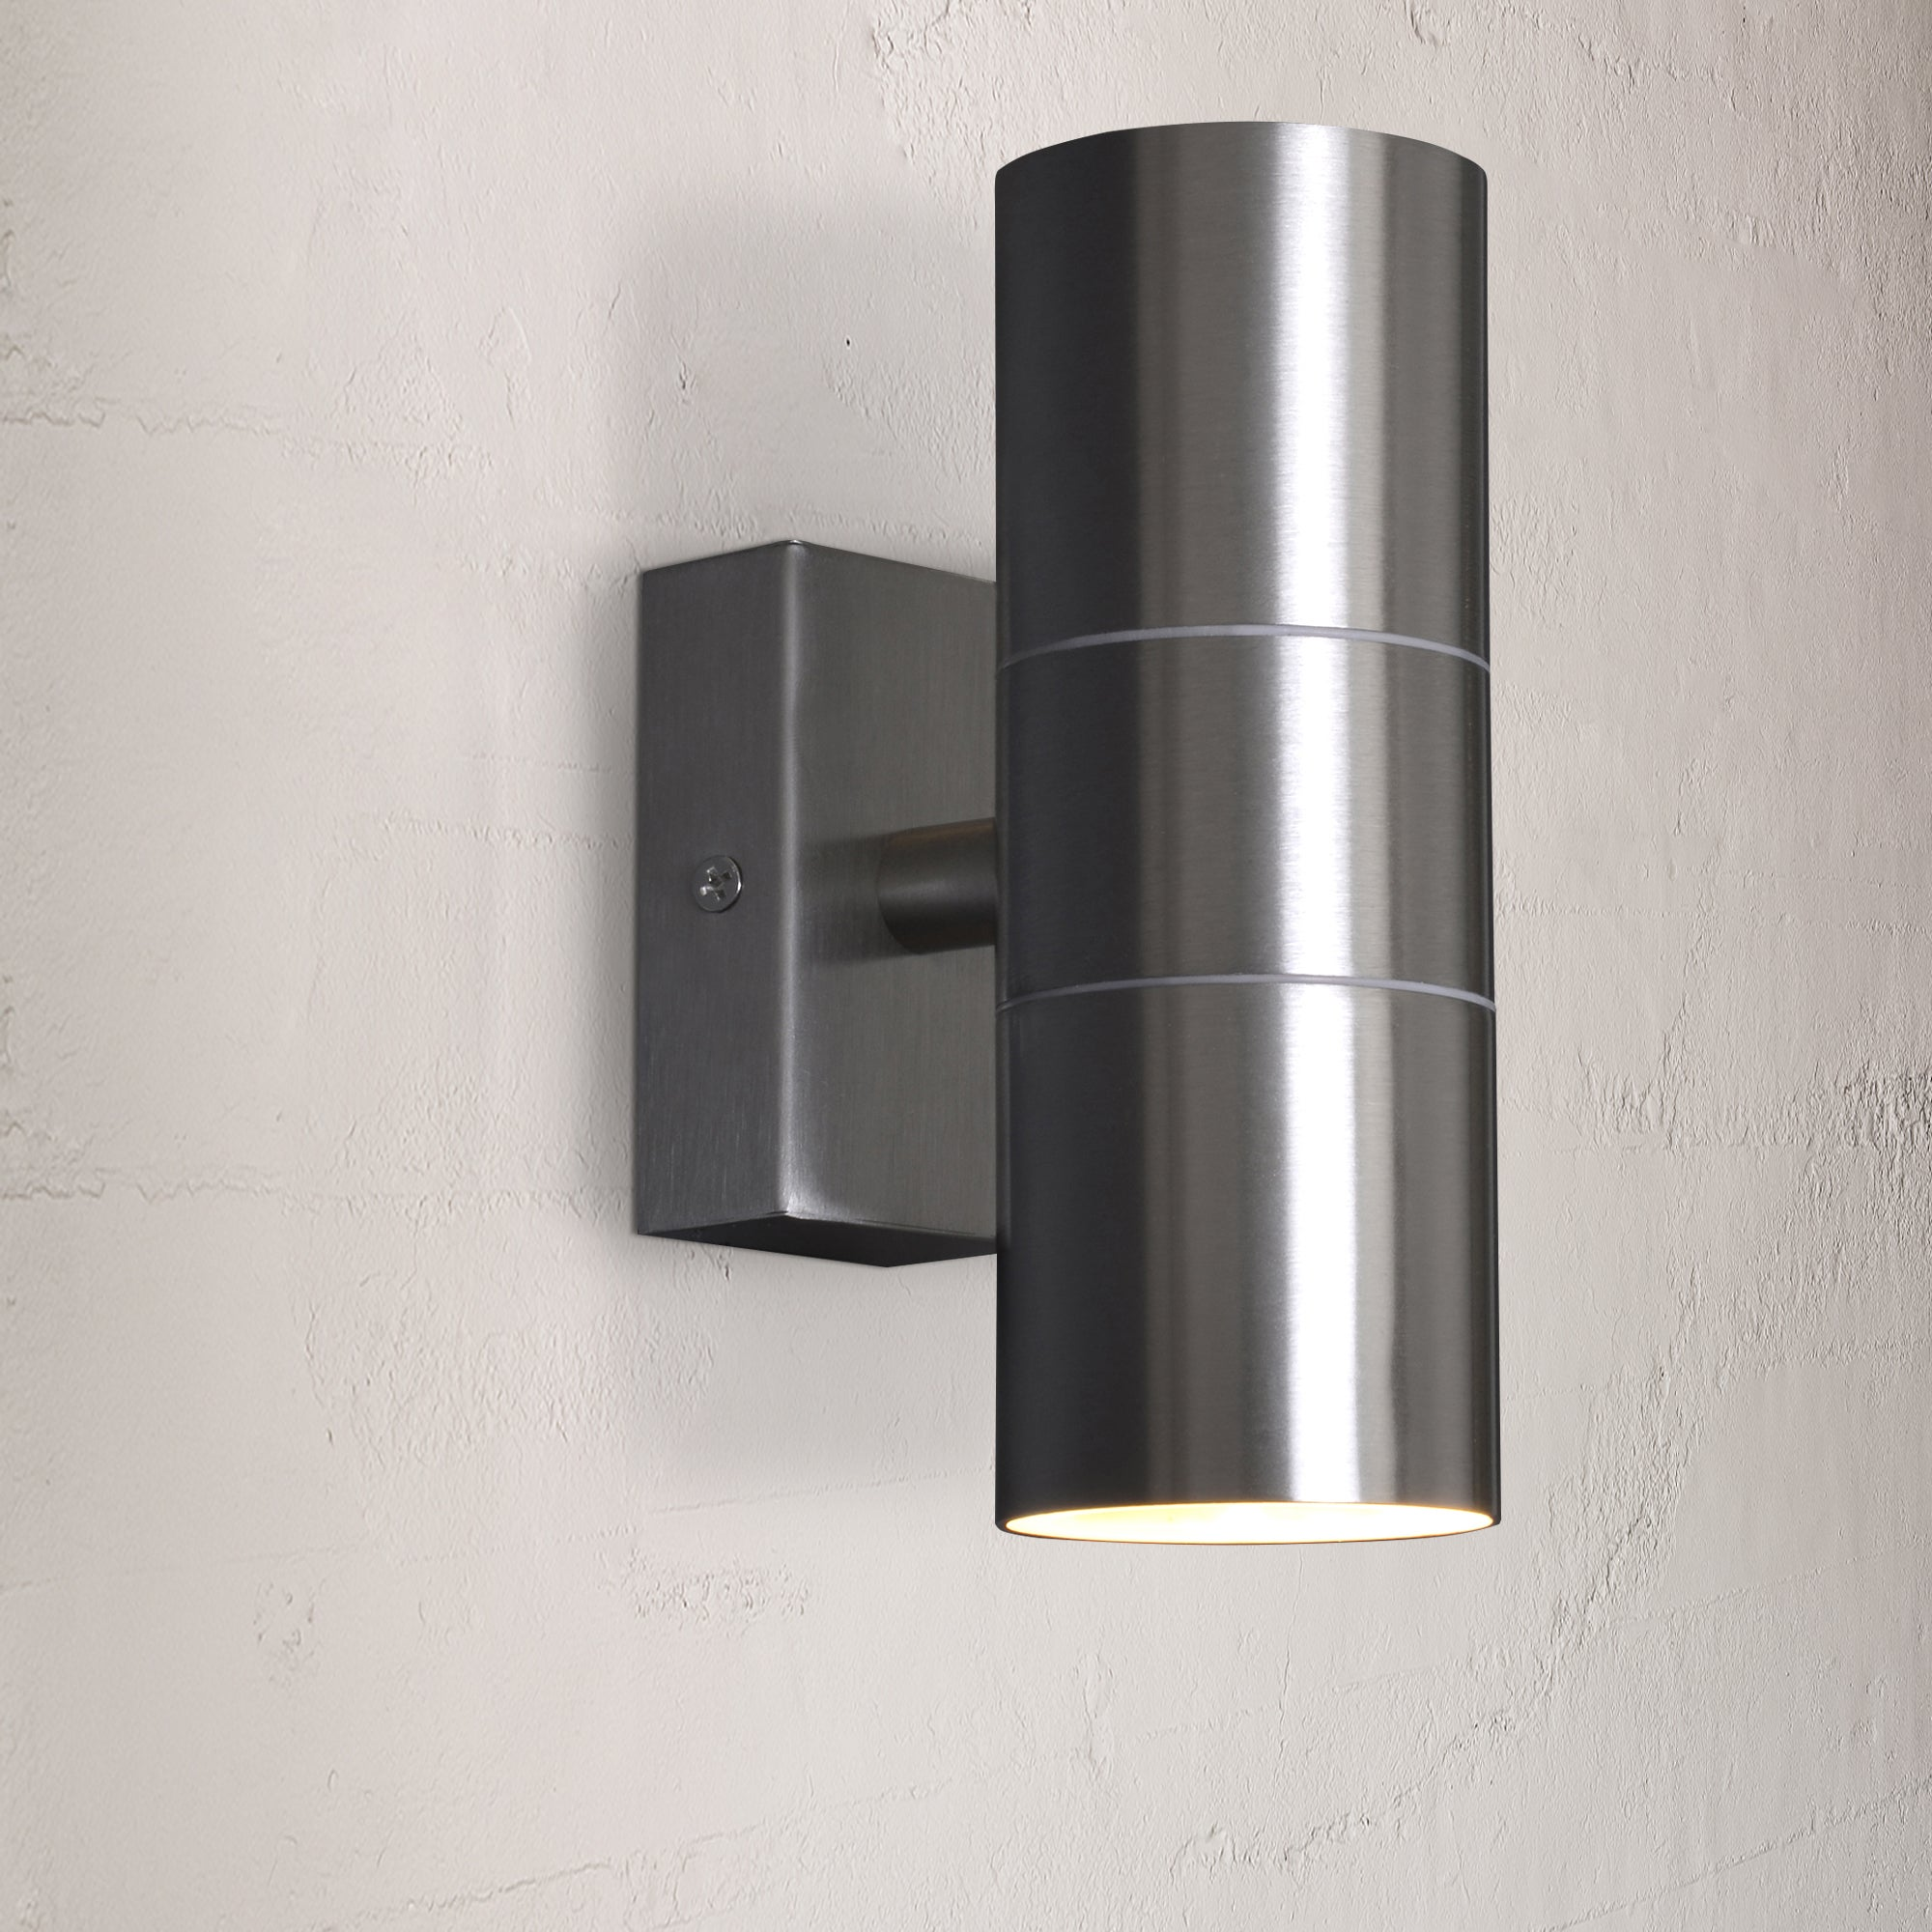 Image of Leto Stainless Steel Up Down Outdoor Wall Light Stainless Steel